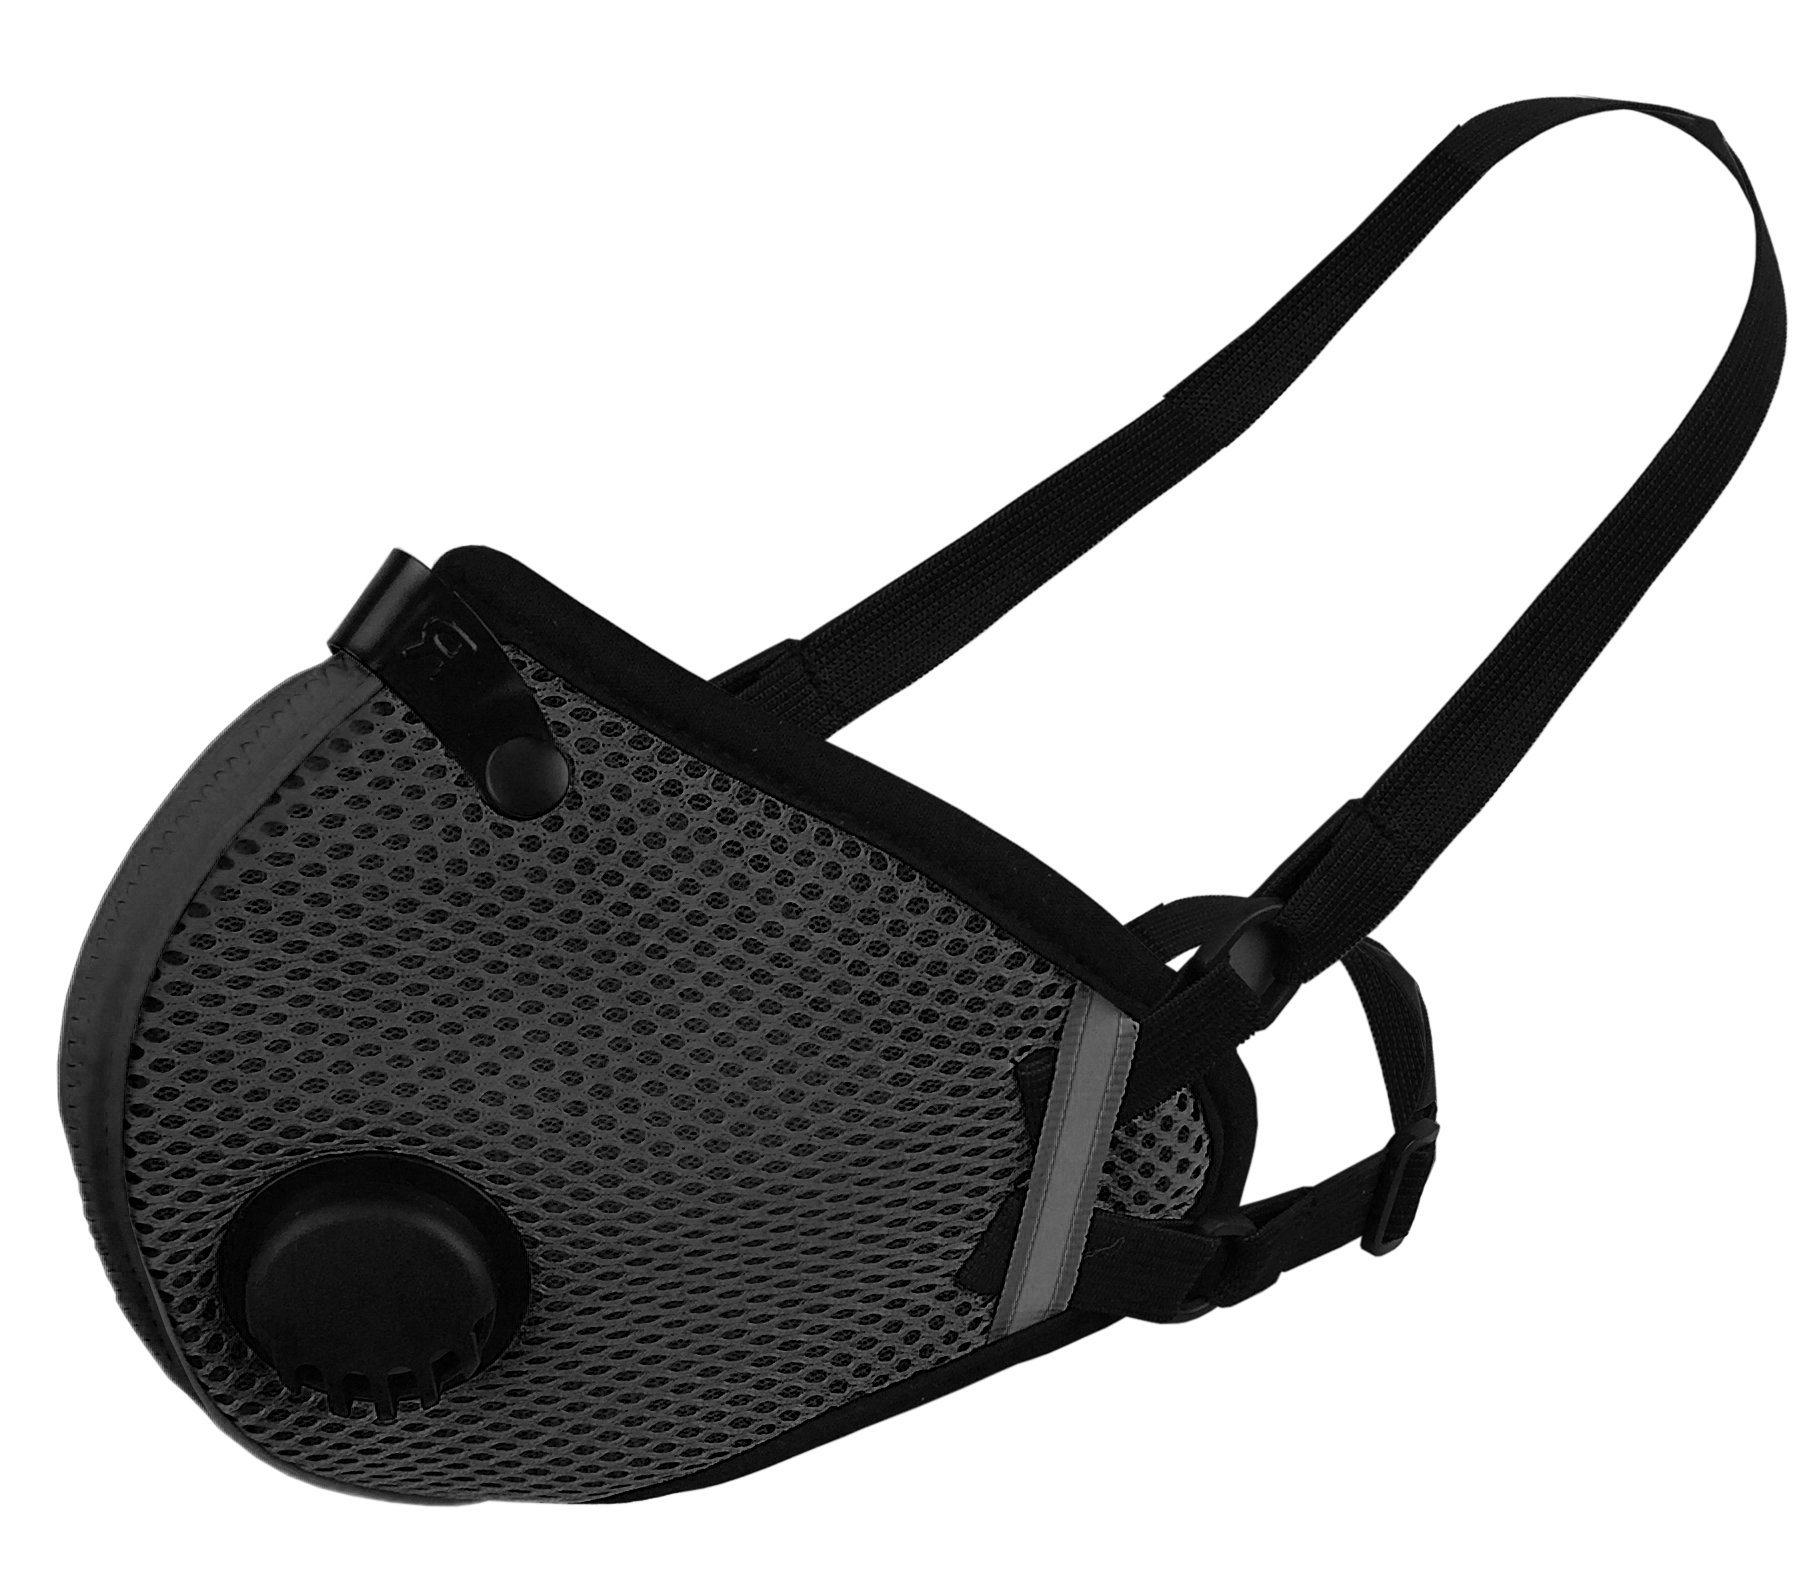 RZ M2.5 Dual Strap Mesh Dust/Air Filtration Mask Bonus Pack Mask Washable New Adjustable Straps Allergy/Asthma/Construction/Woodworking/Pollution/Adult (Large (125lbs - 215lbs), Black) by RZ Mask (Image #2)